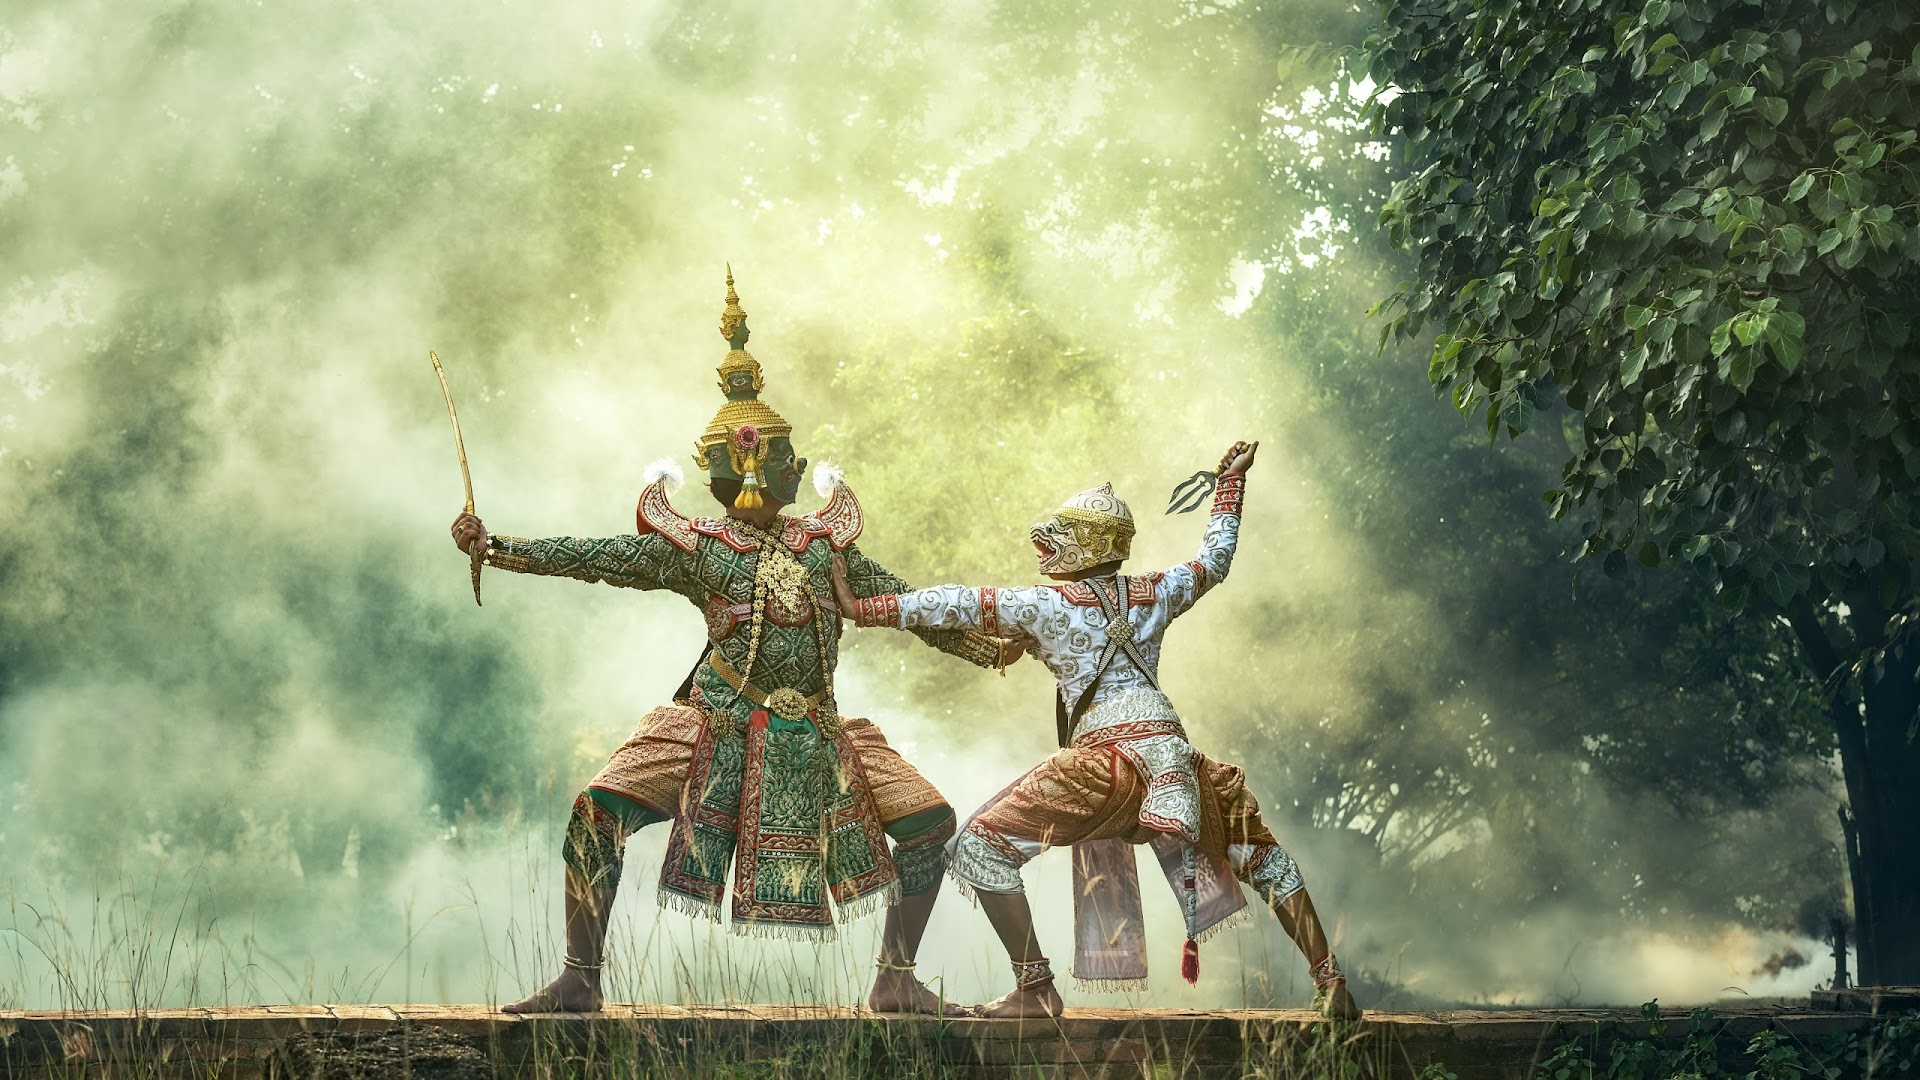 The Khon Is A Traditional Masked Dance Hd Wallpaper Background Image 1920x1080 Id 766589 Wallpaper Abyss